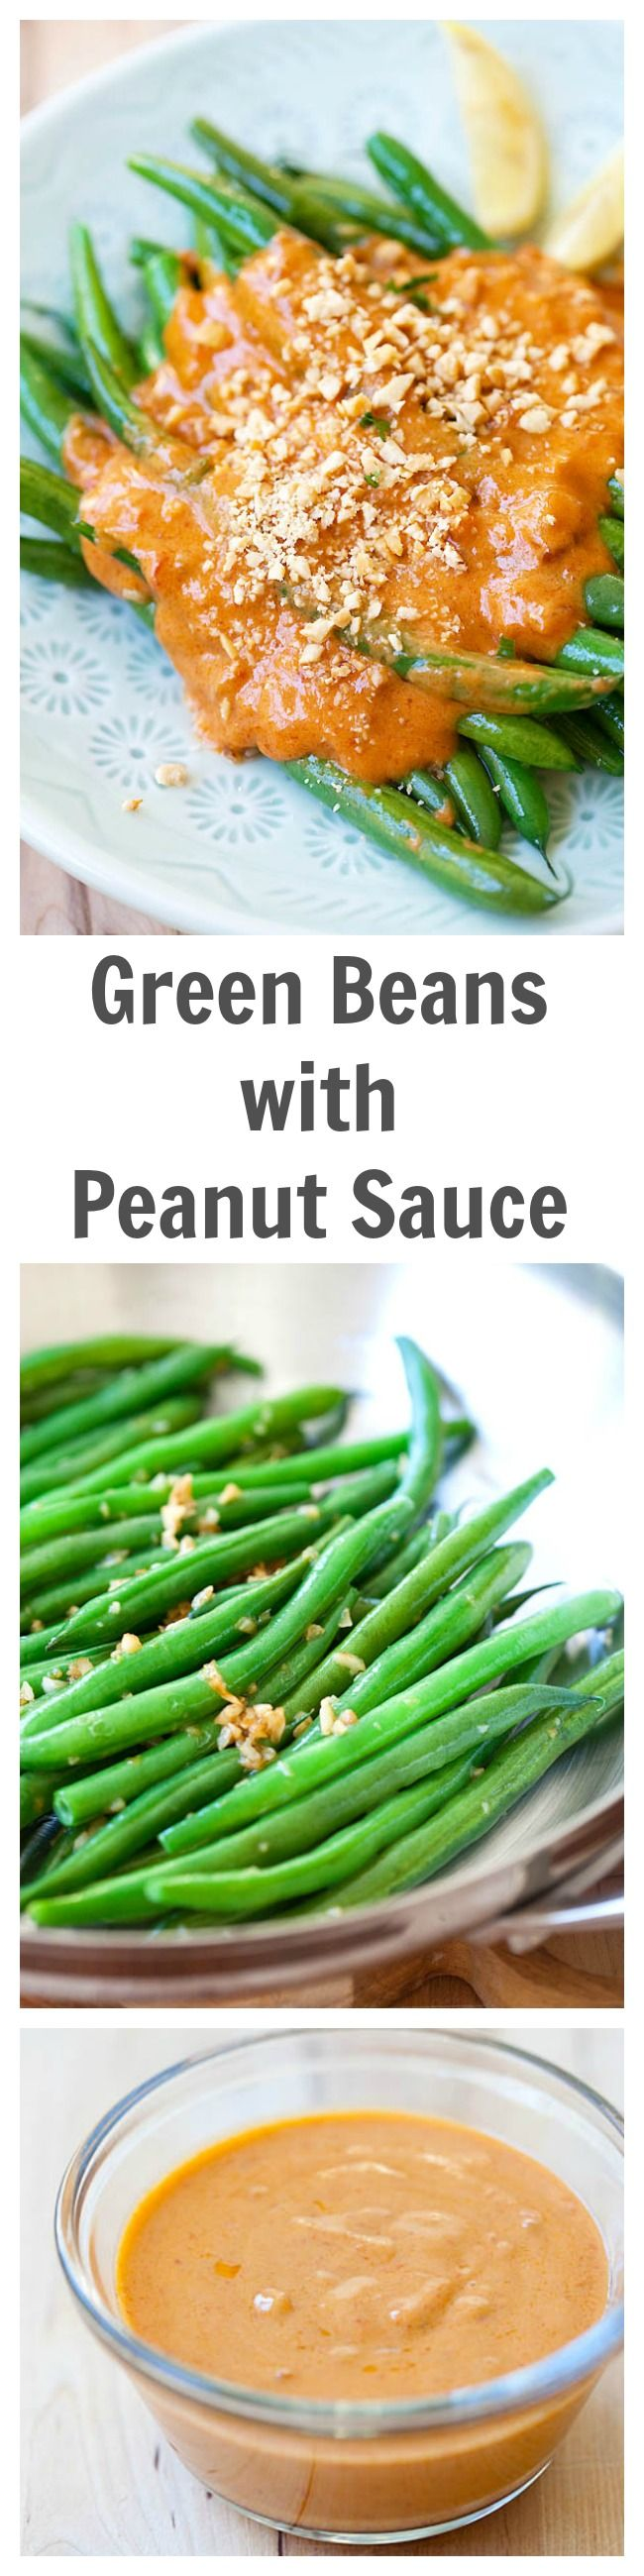 Green Beans with Peanut Sauce - Saute green beans with garlic and top them with spicy and savory Thai peanut sauce. Easy, healthy and delicious recipe!